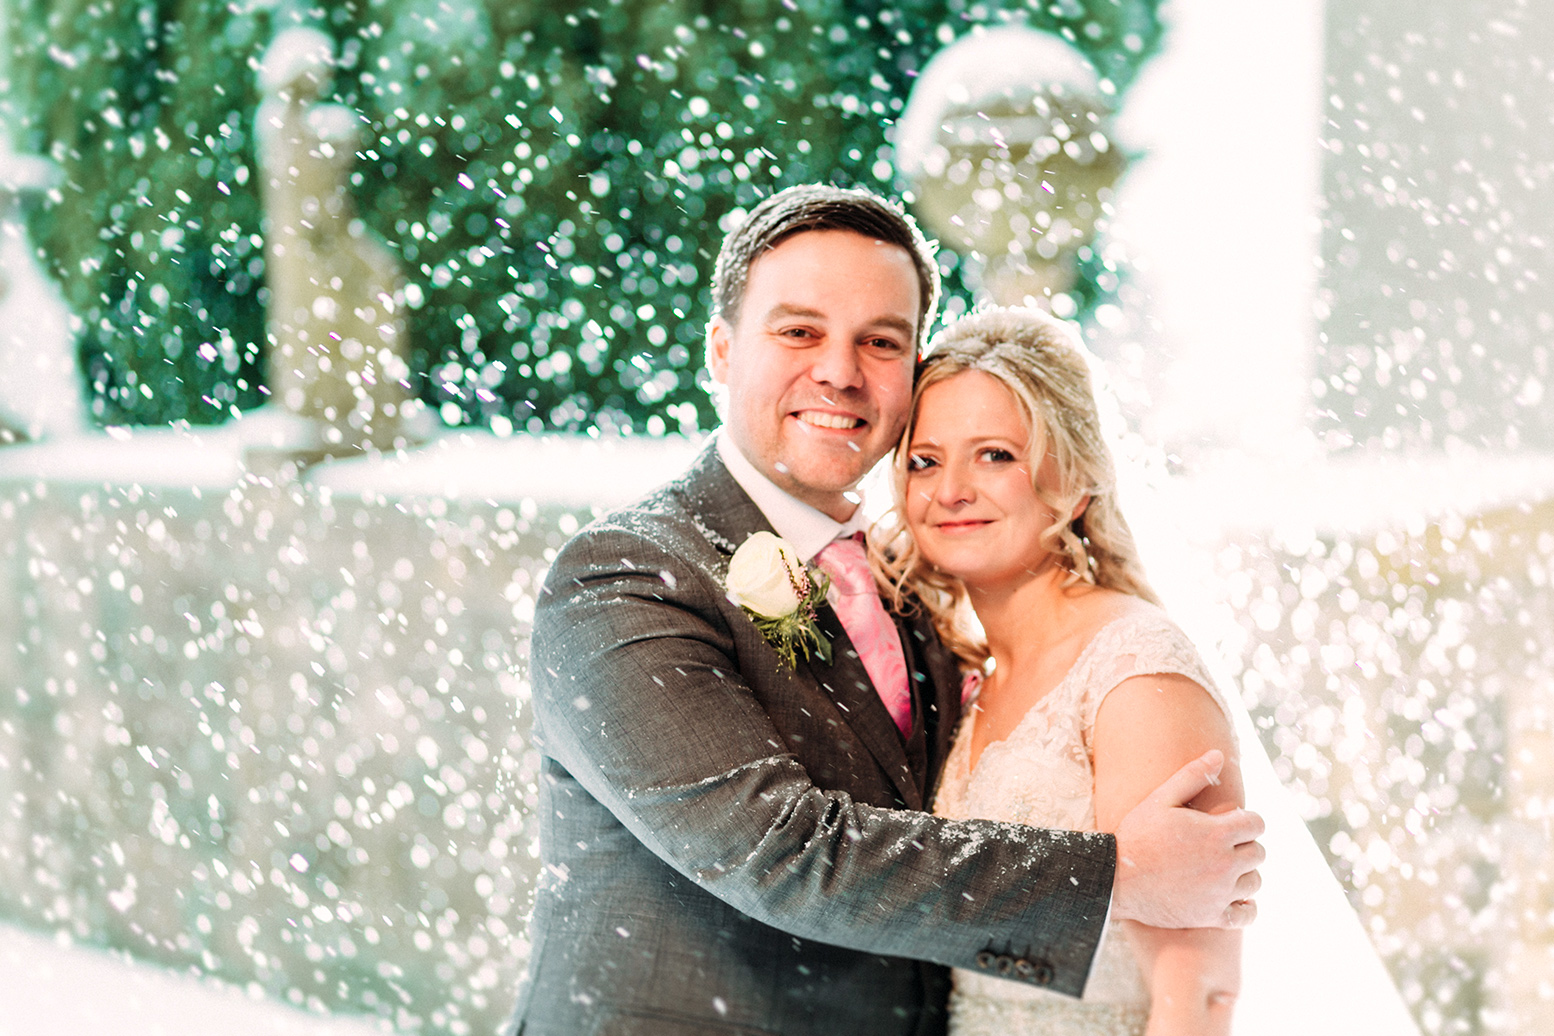 Carly and Chris Atwill were caught in a blizzard at their wedding